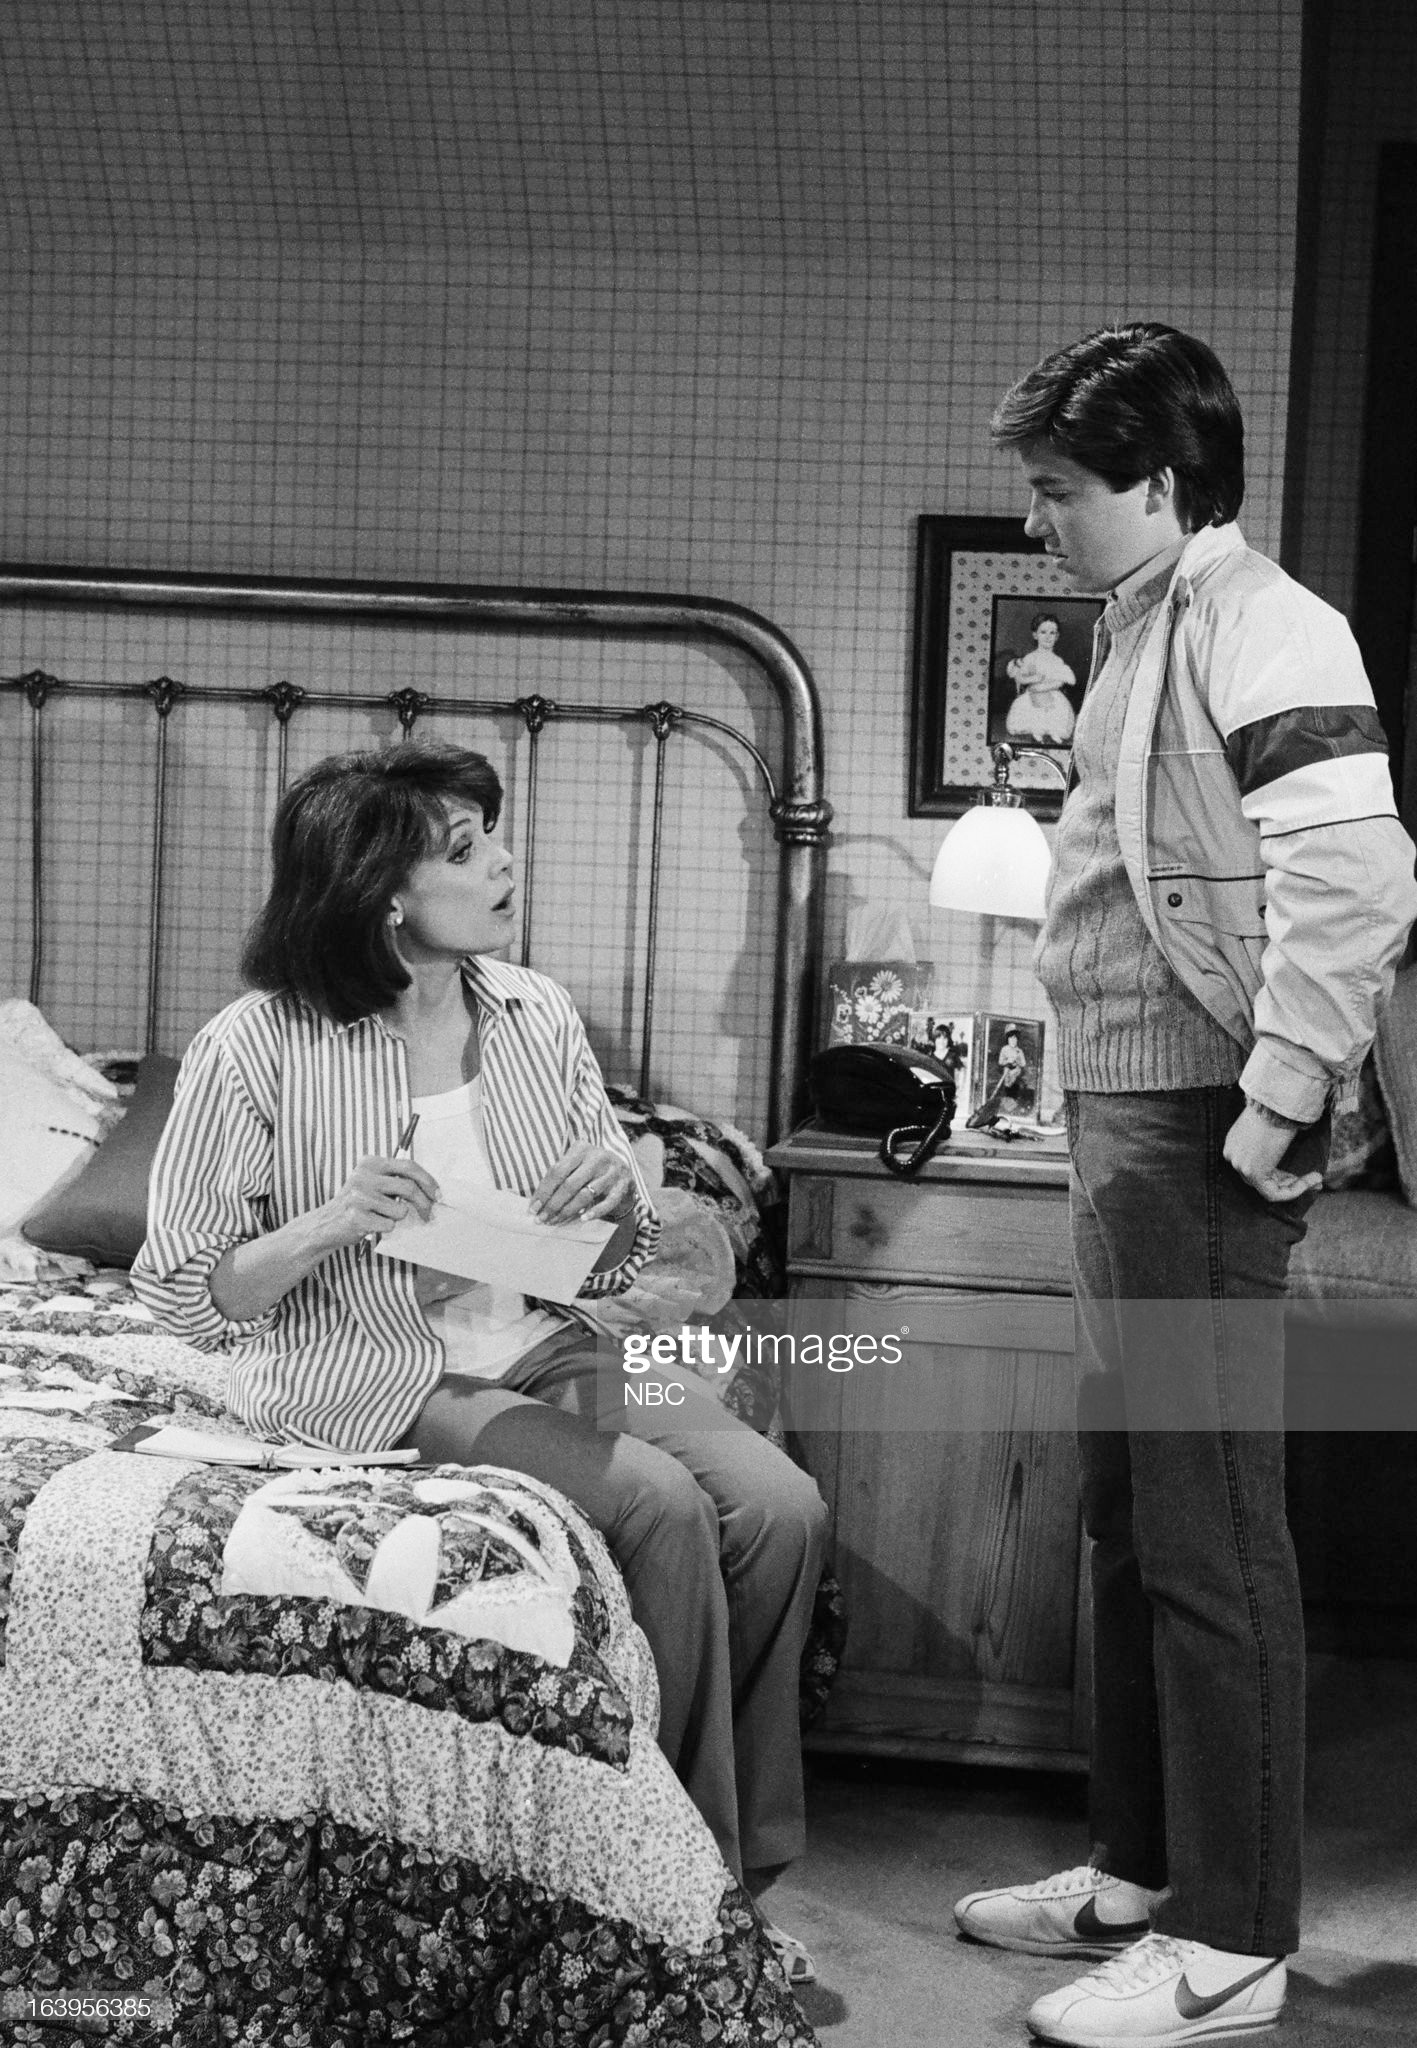 old-enough-episode-101-pictured-valerie-harper-as-valerie-hogan-jason-picture-id163956385